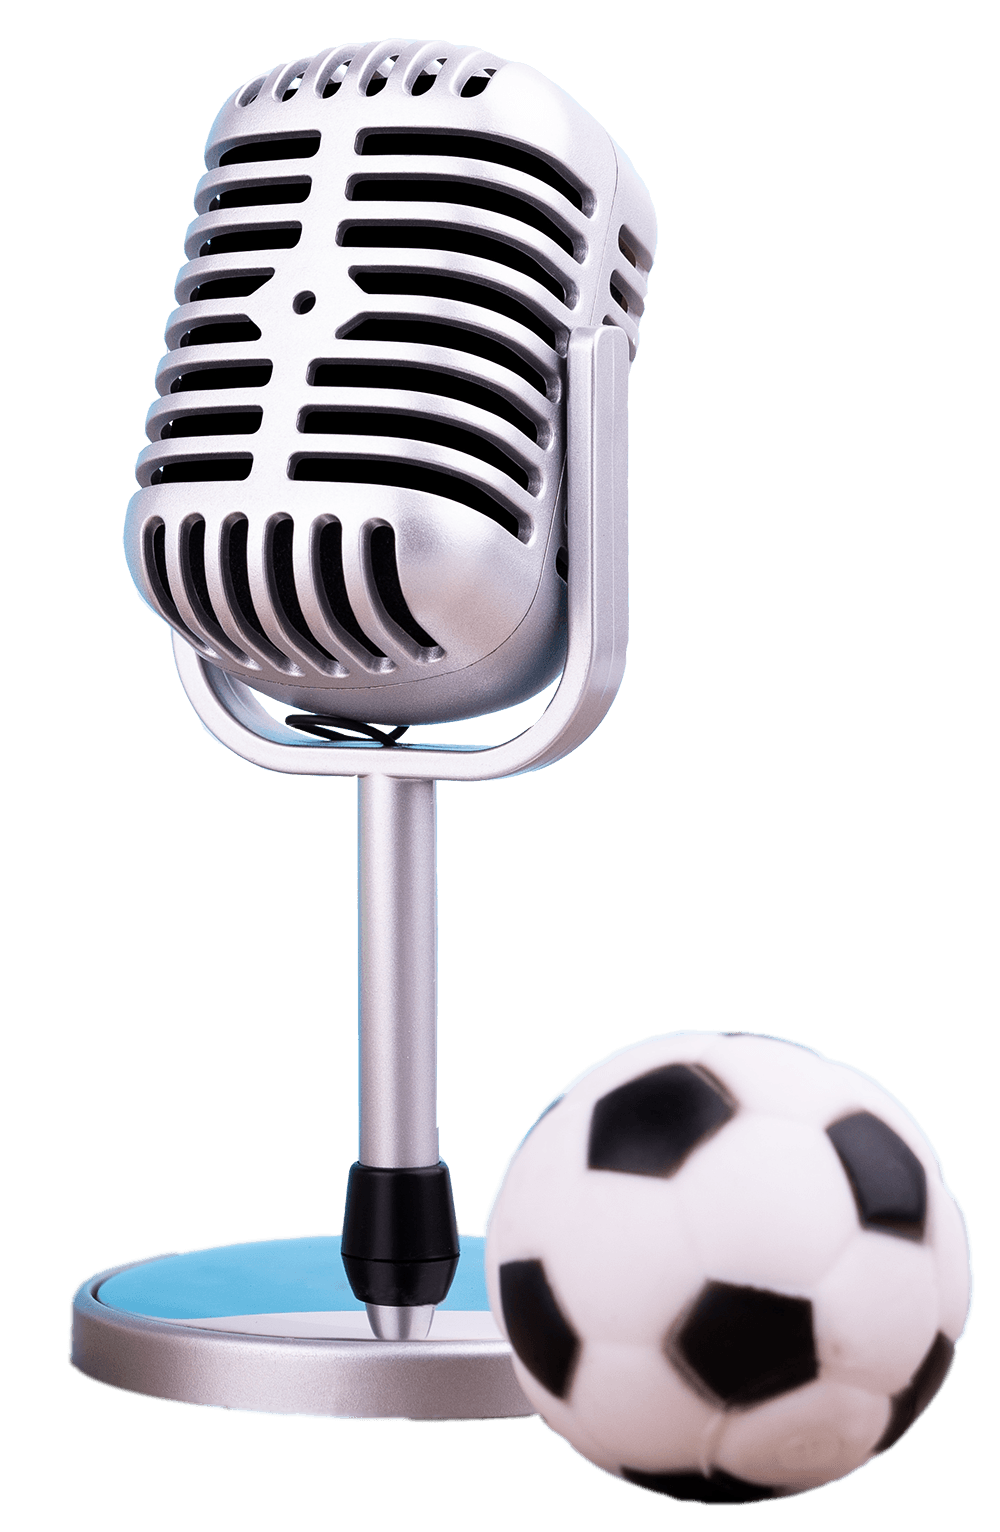 Microphone with a small football next to it